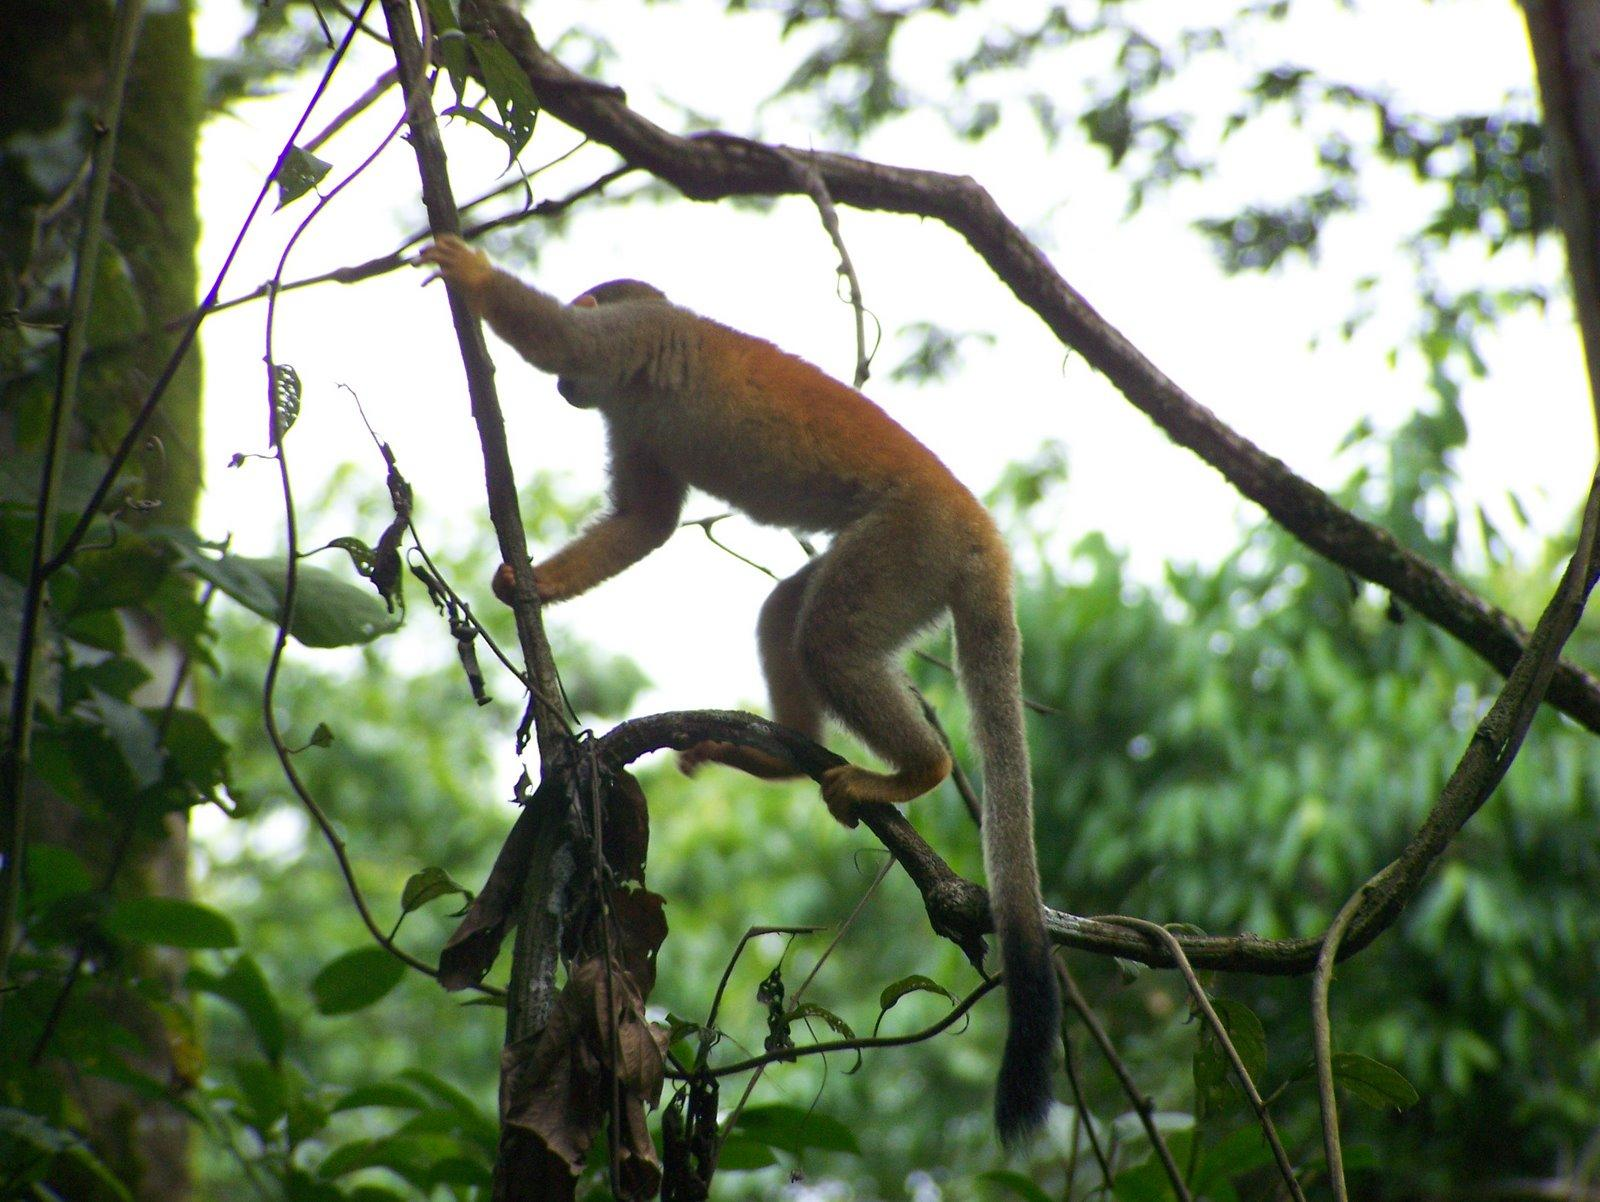 Burnt orange colored monkey swinging through the trees in central america